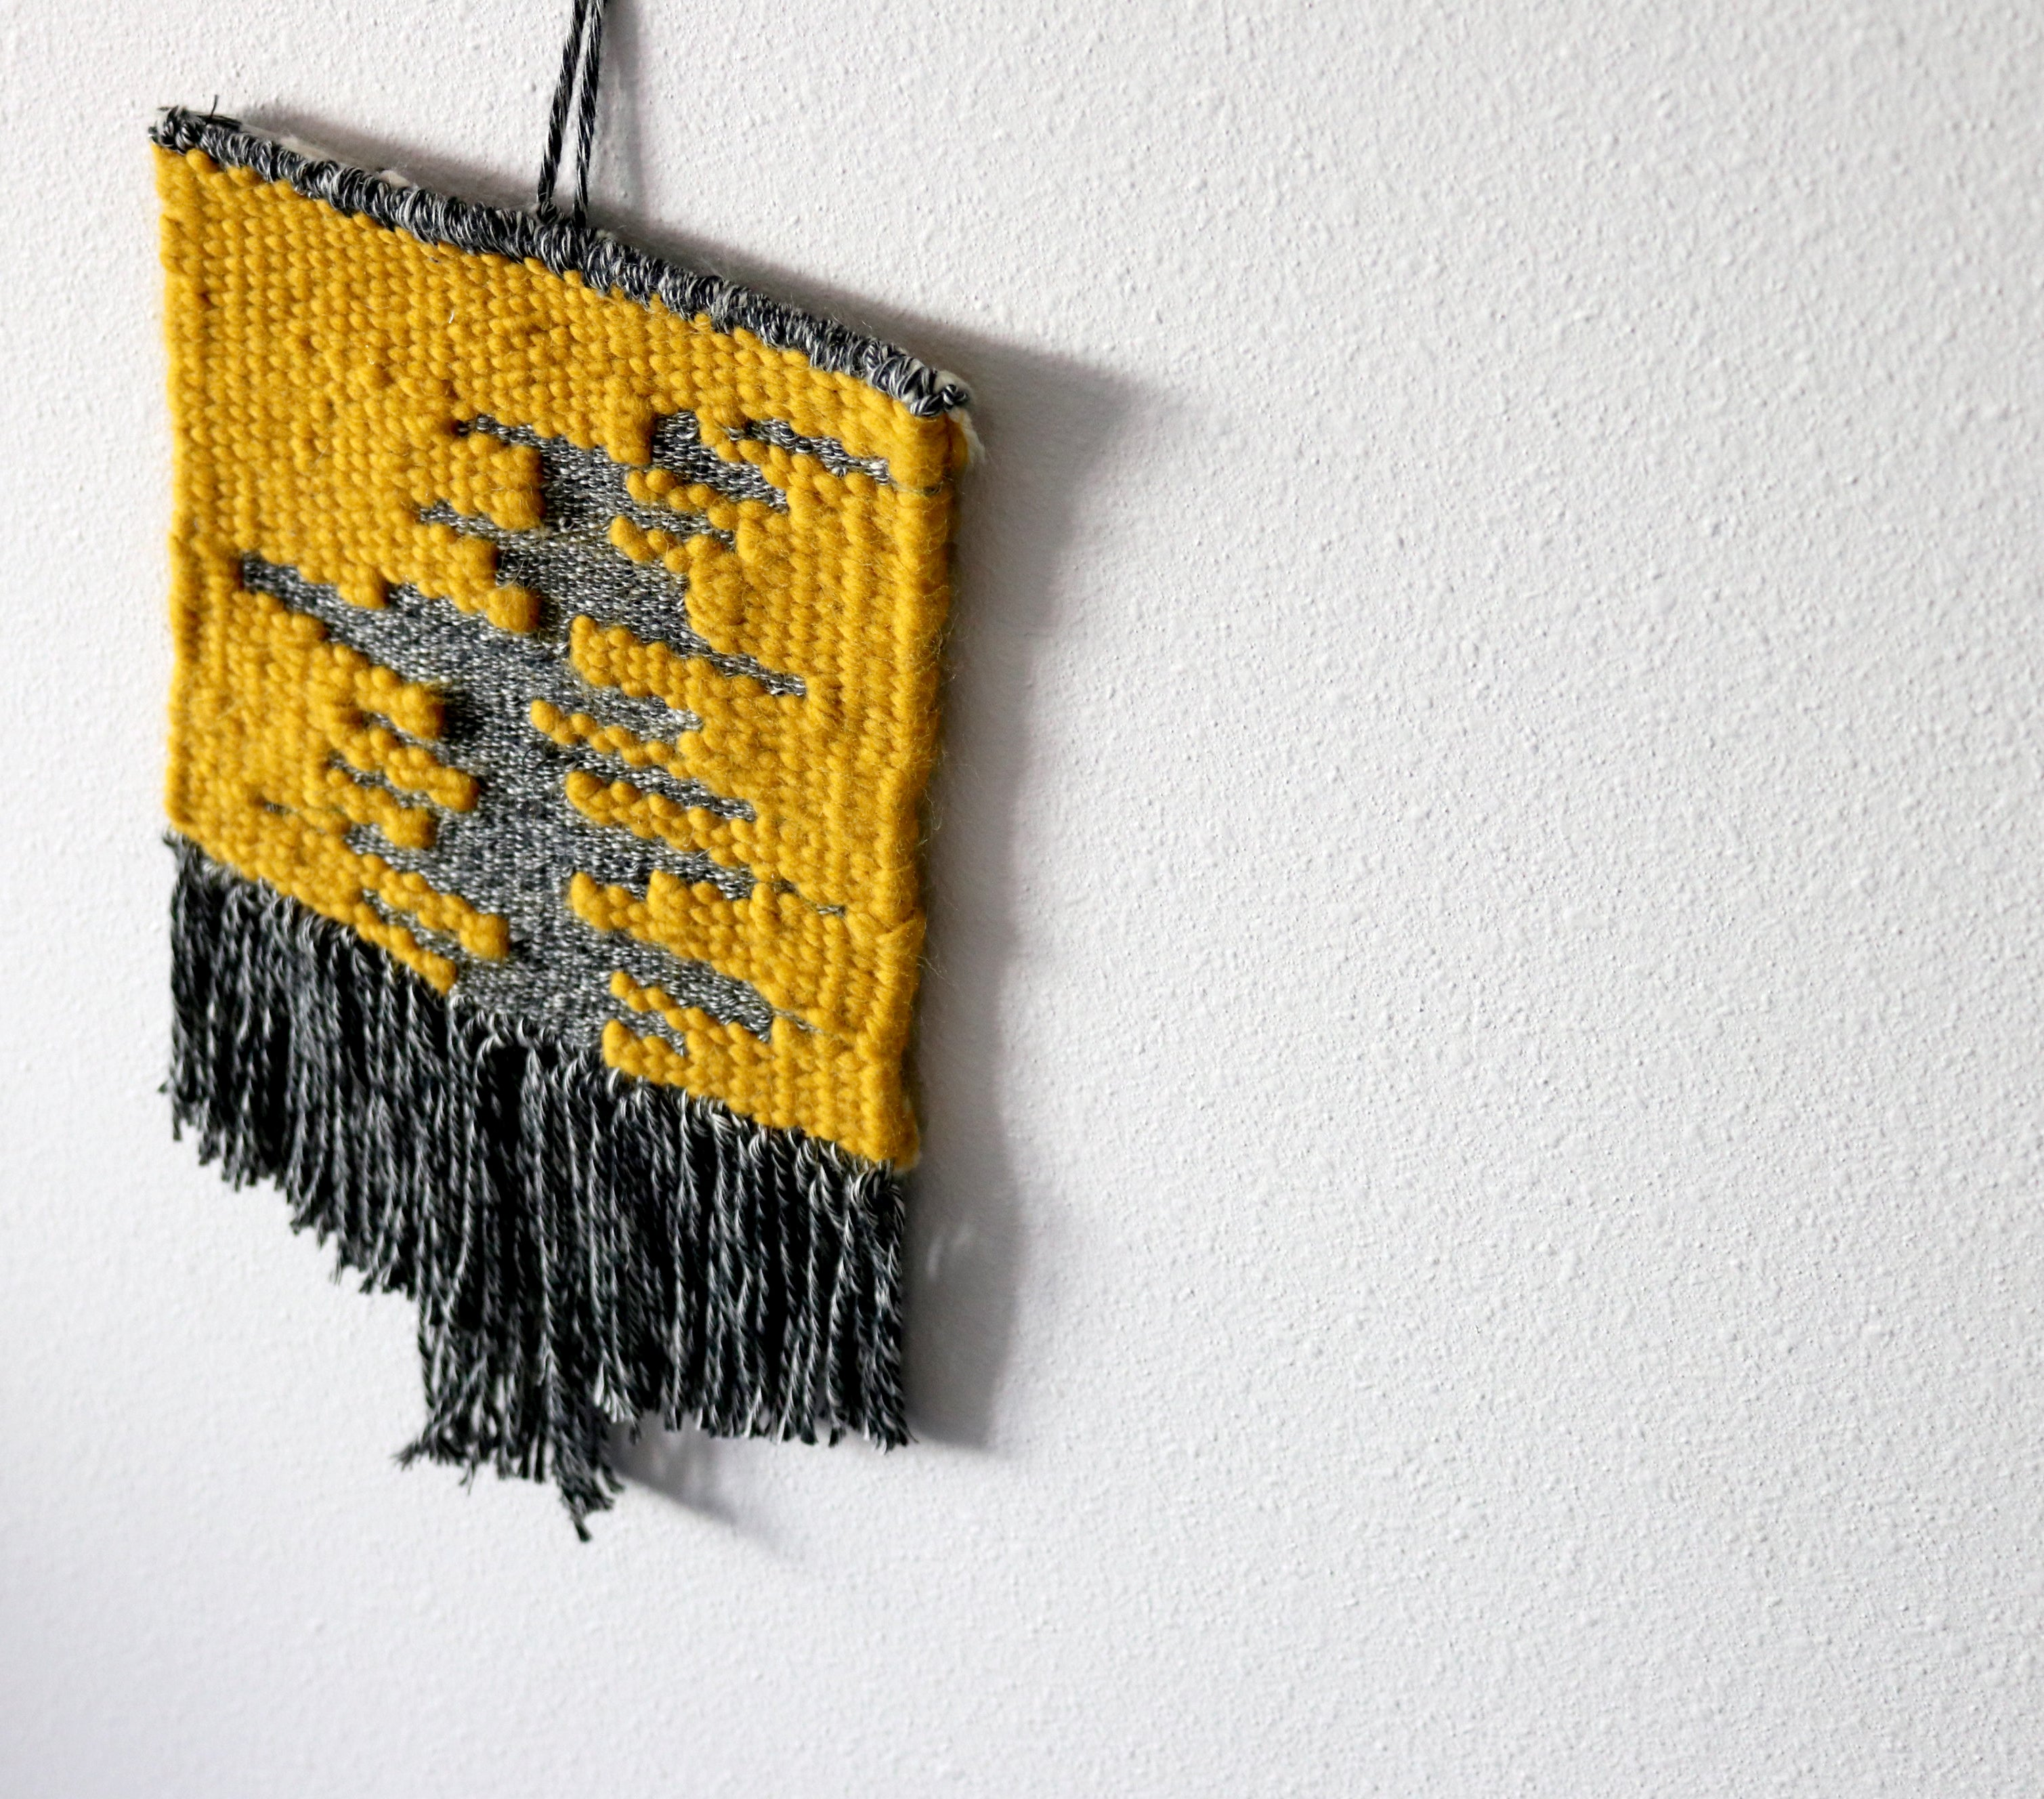 Texture & Sett Wall-Hanging Weaving Kit